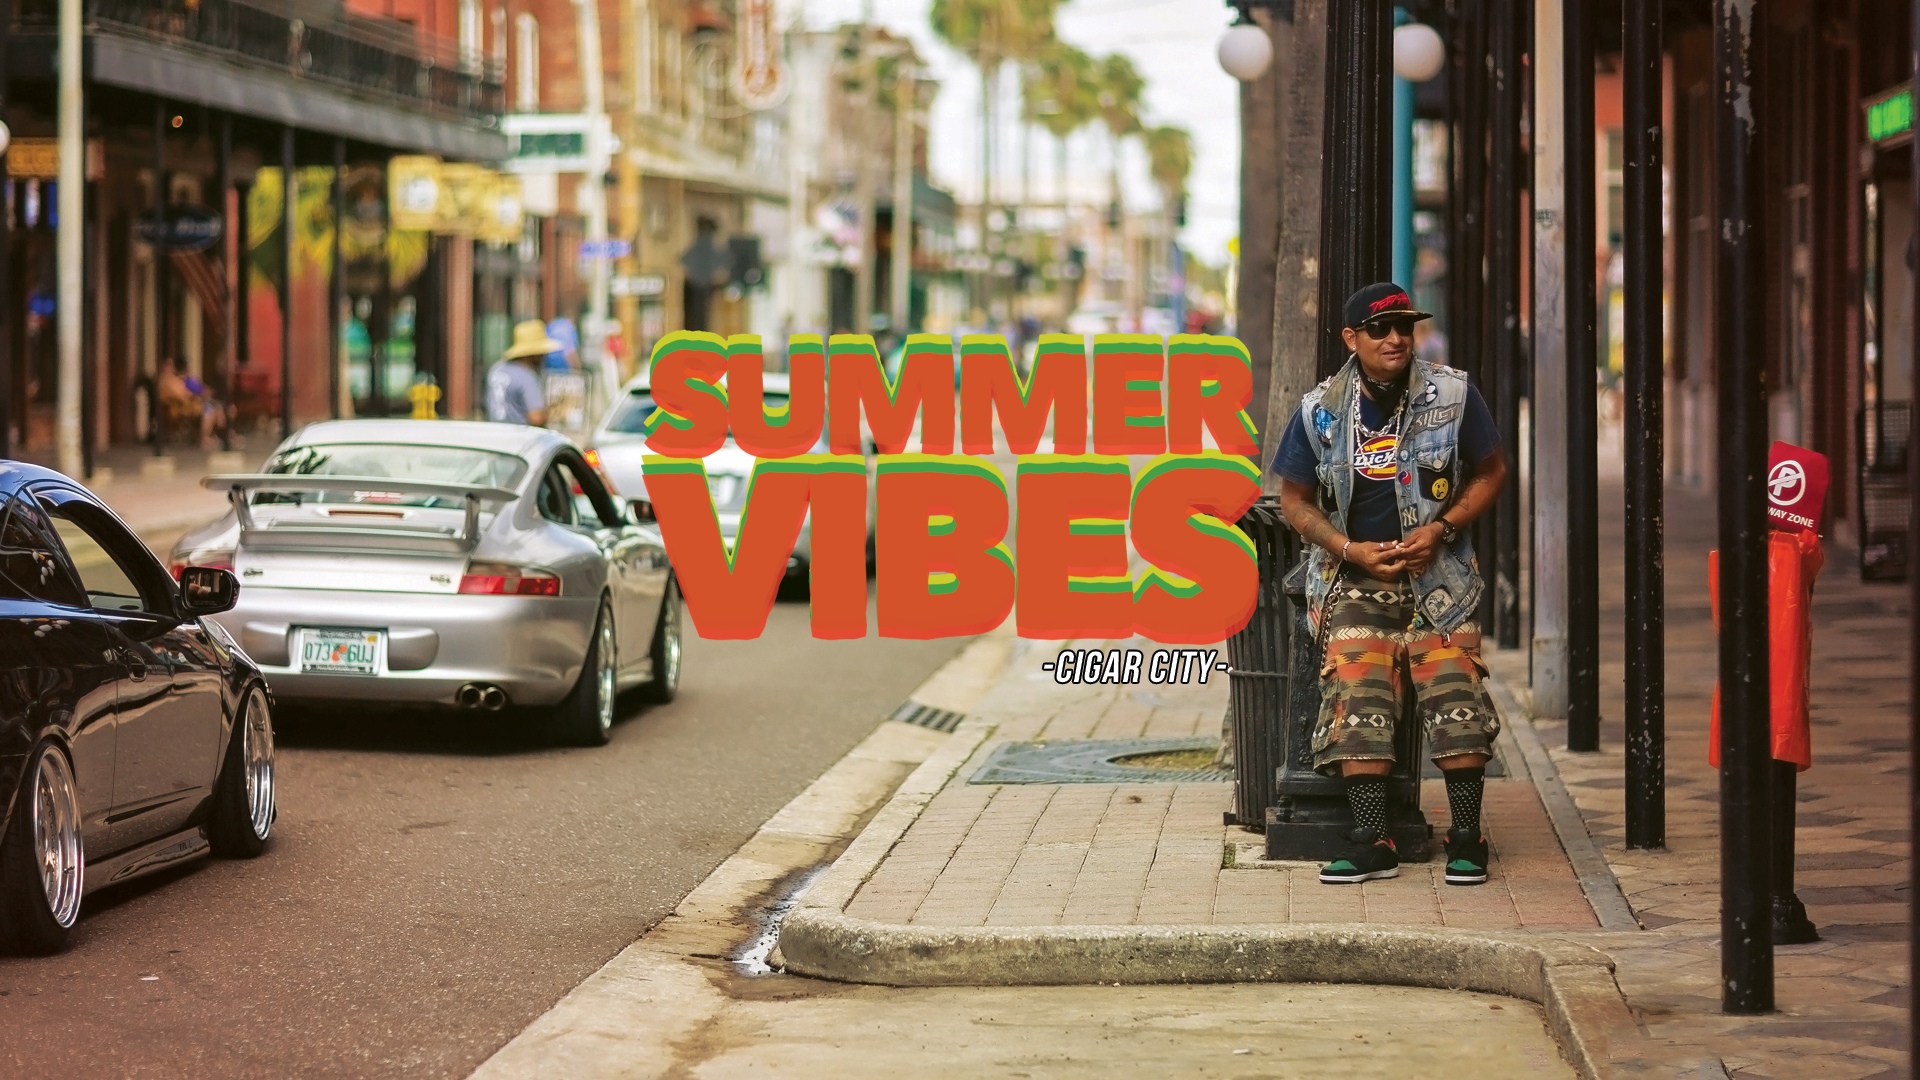 Summervibes Ybor City 2018